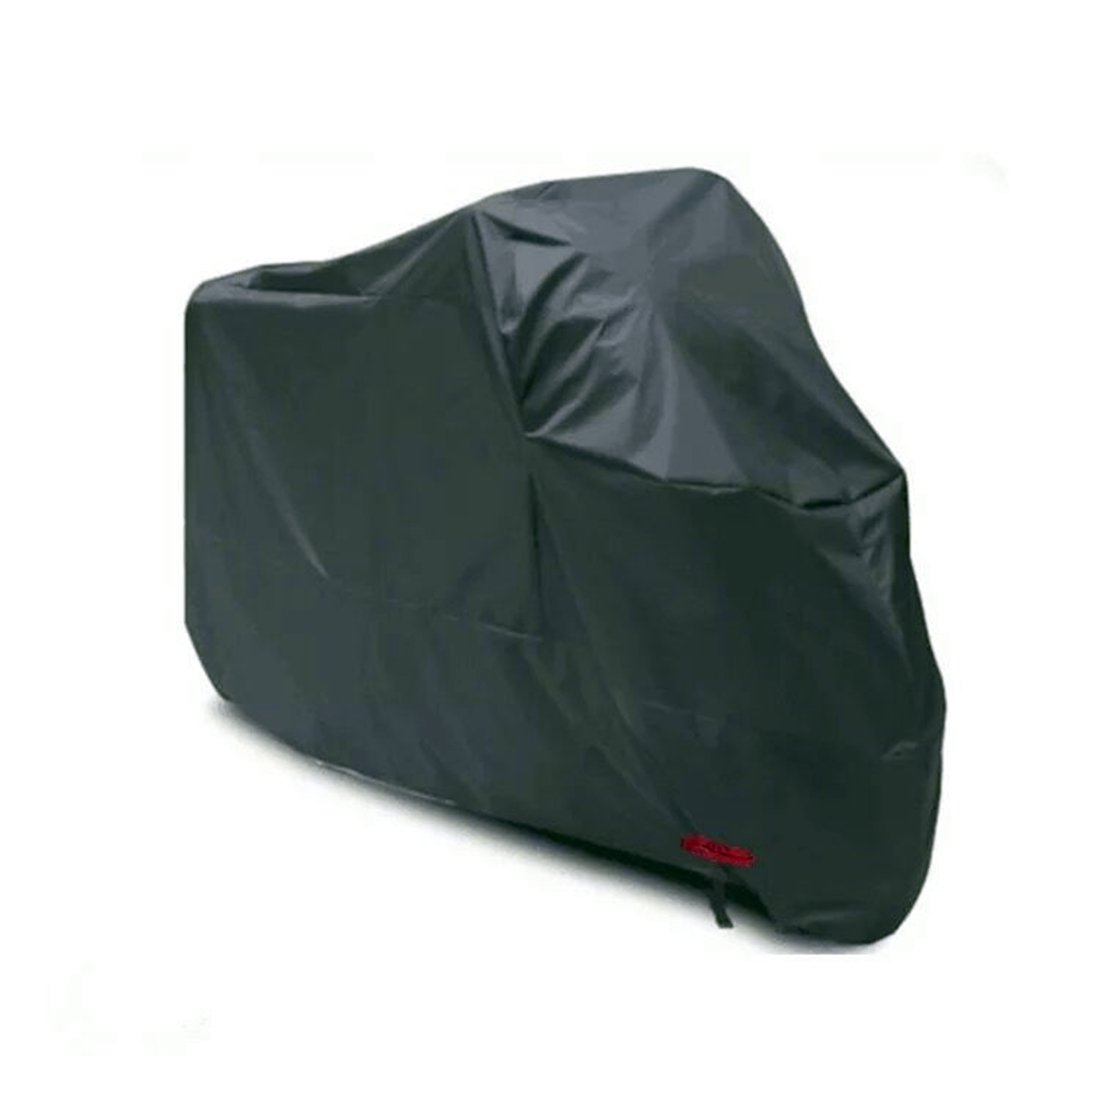 FLM Motorcycle Cover - Heavy Duty 190T Nylon Waterproof Motorbike Cover Anti Dust Rain UV Indoor Outdoor Protective Breathable Cover with Lock-holes, Storage Bag, XL fuluomei